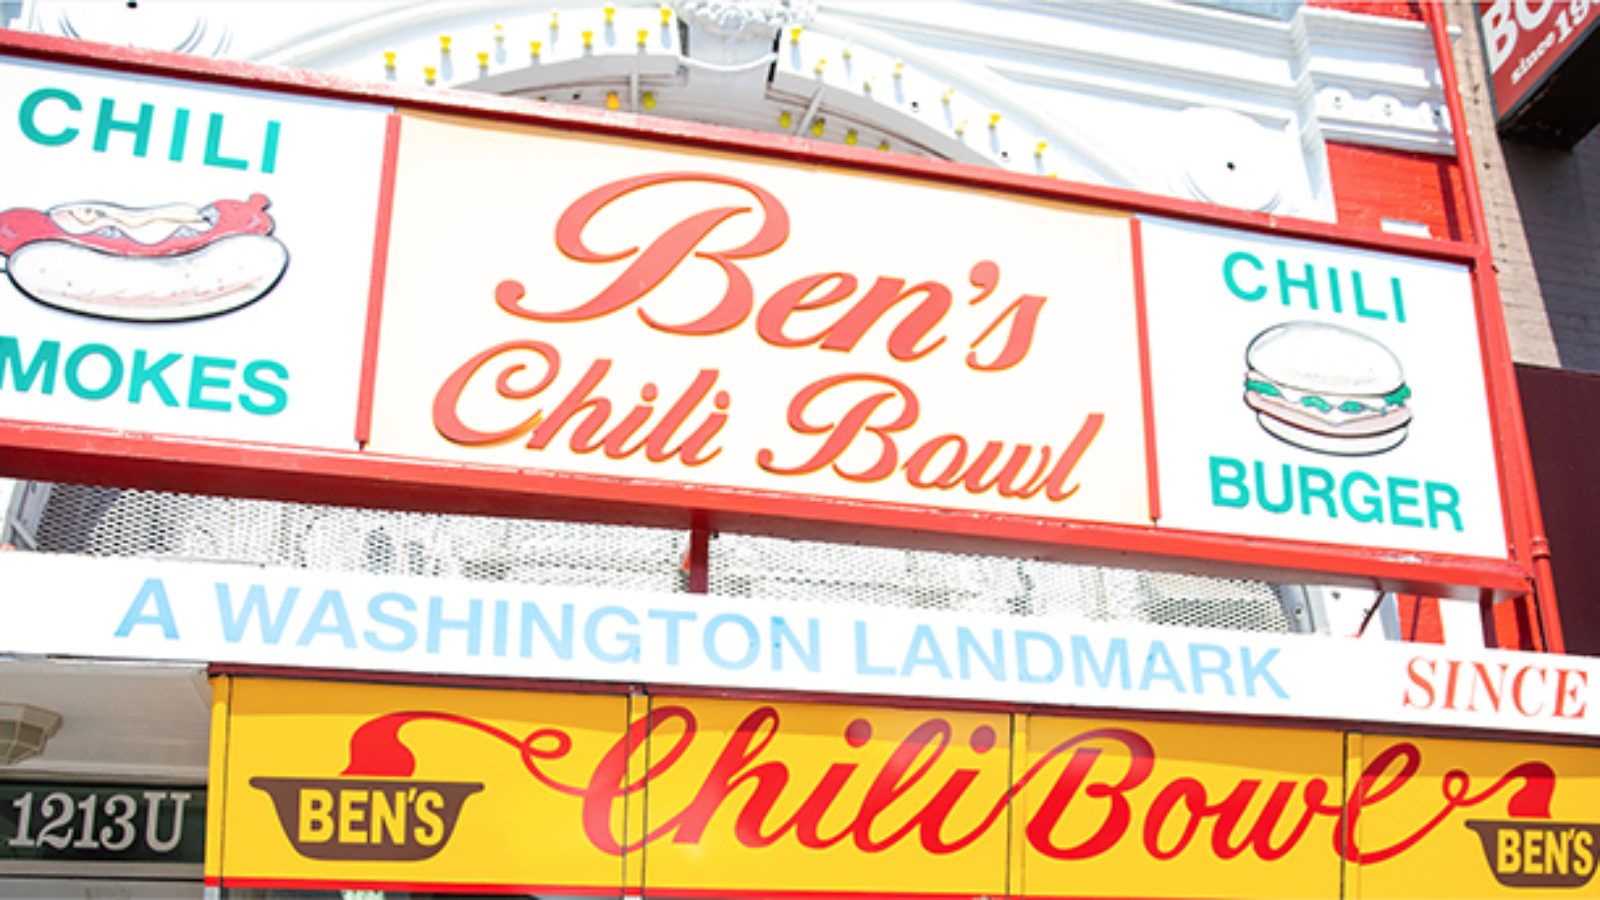 Sign for Ben's Chili Bowl restaurant